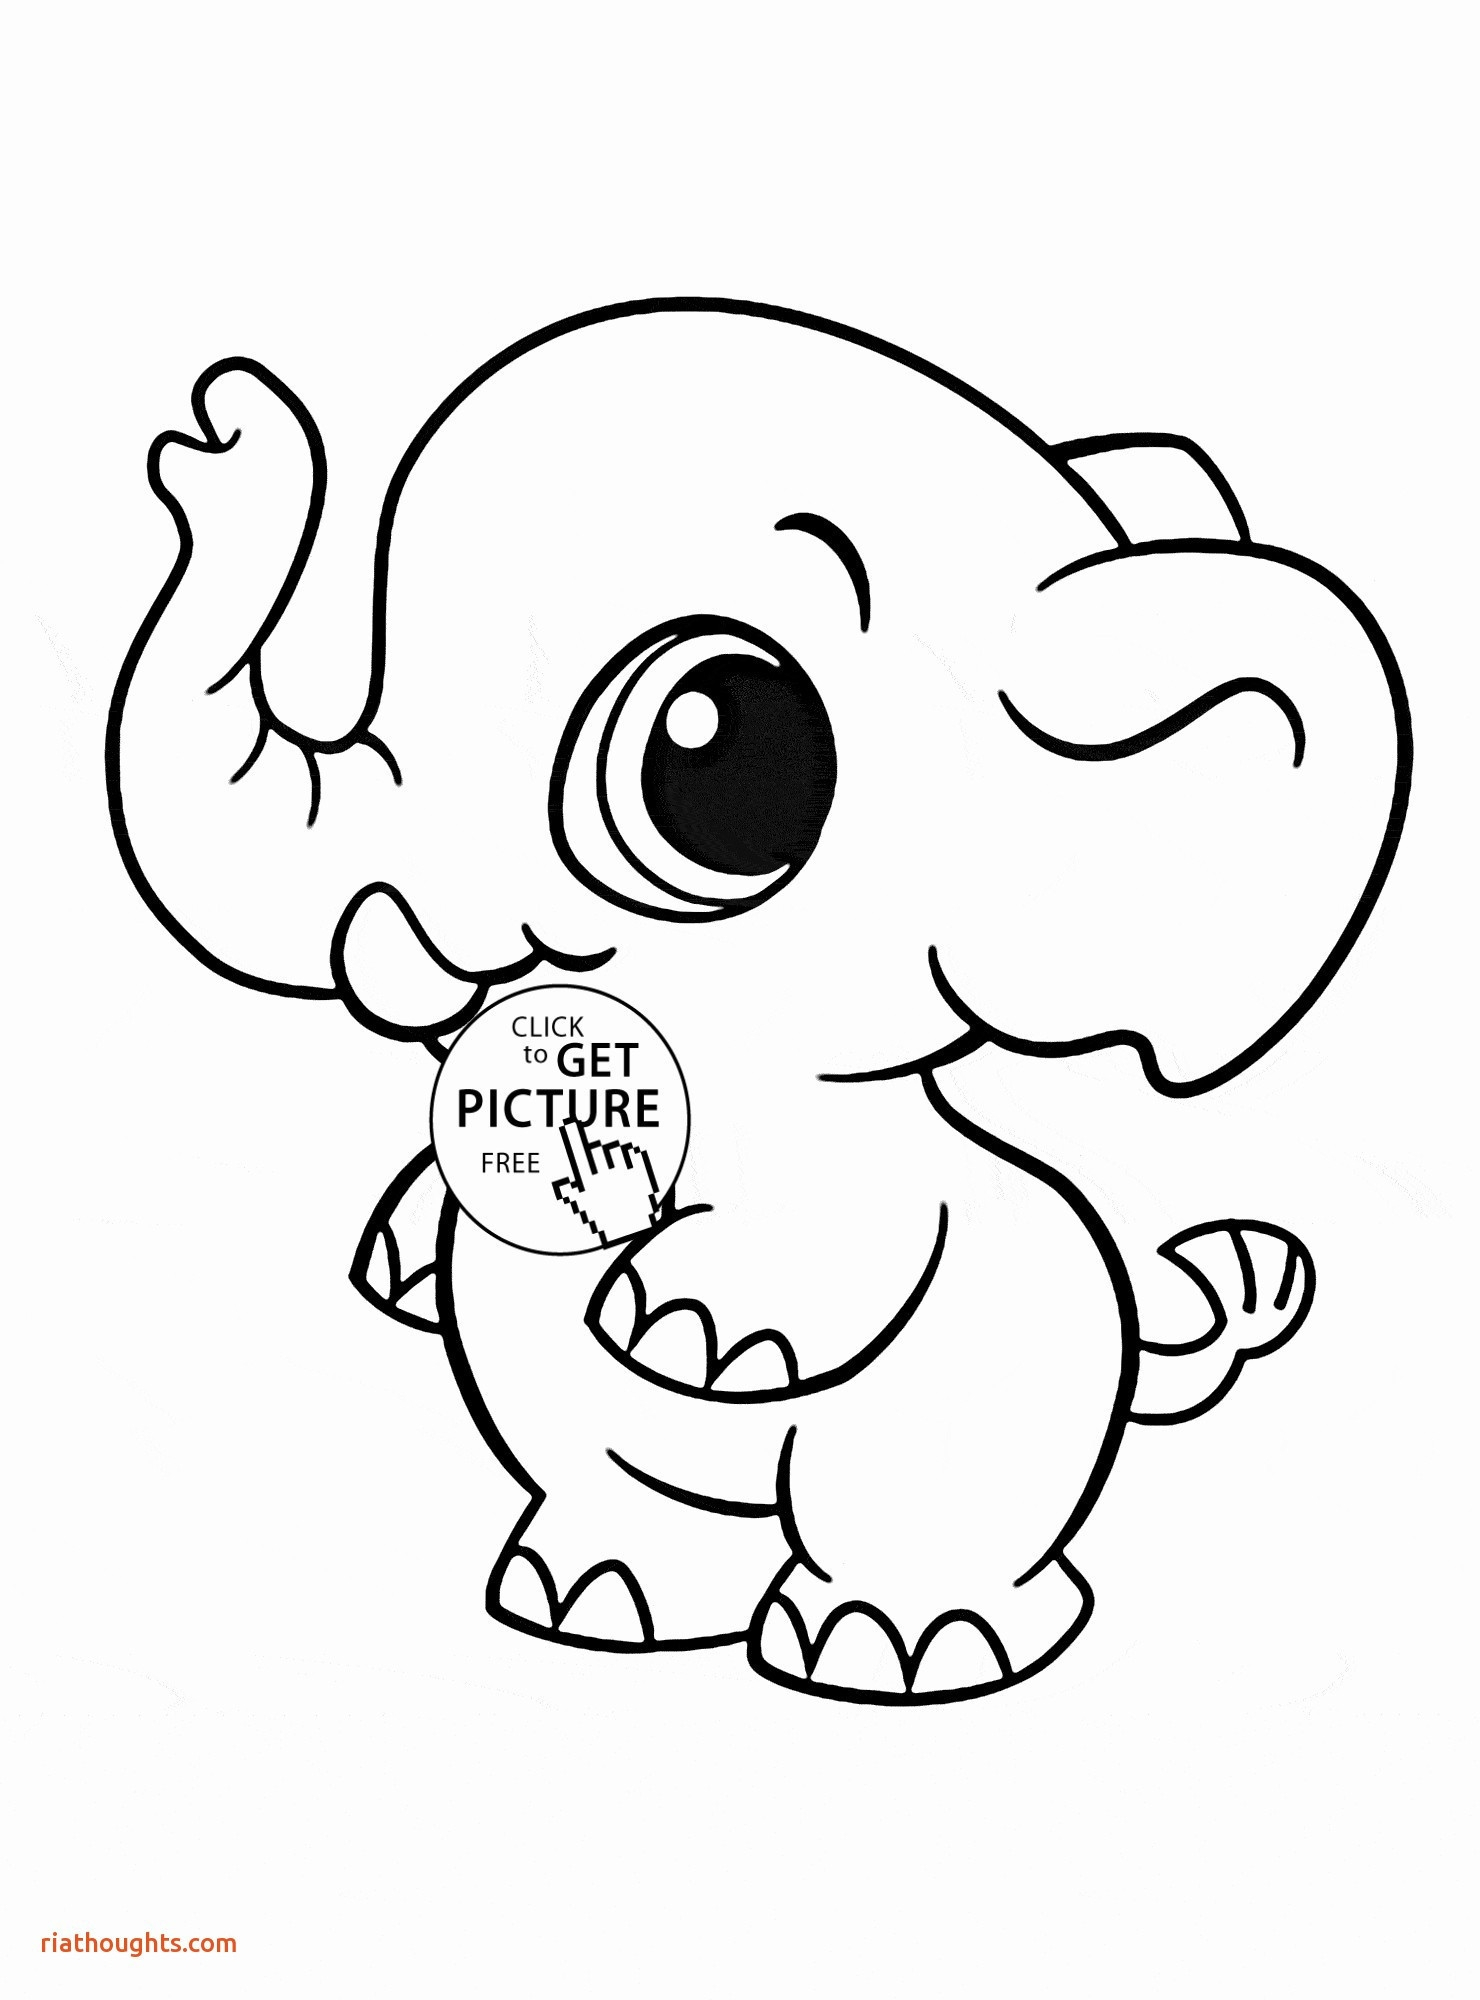 Realistic Coloring Pages  Printable 8j - Free For kids